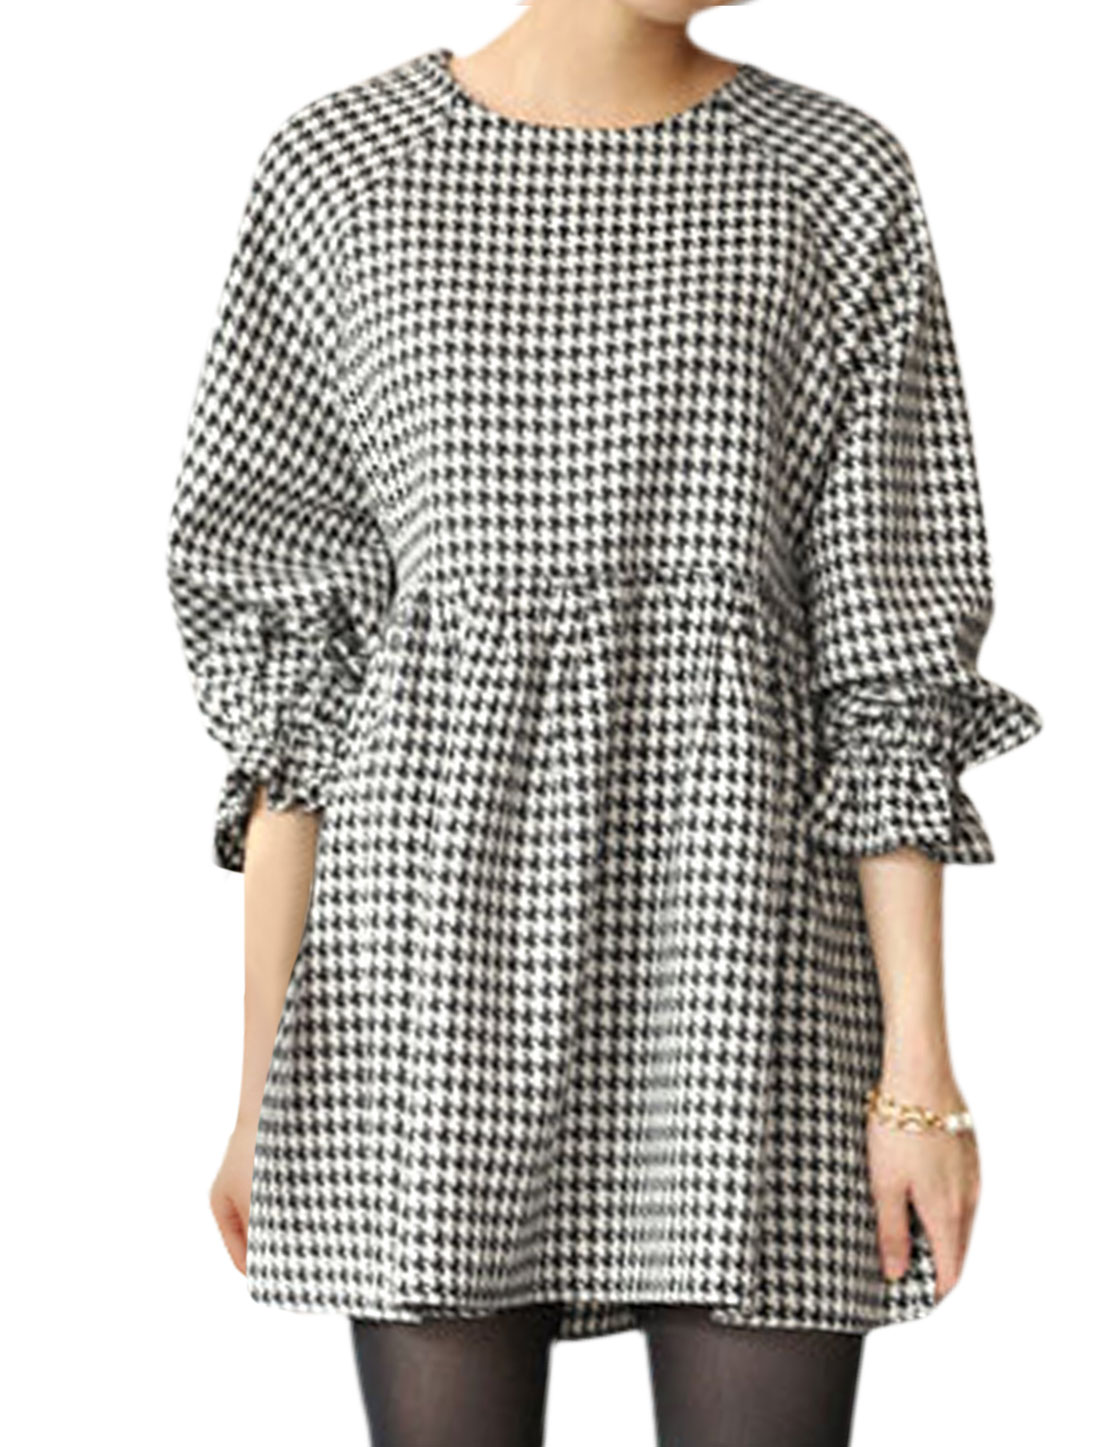 Women Long Sleeves Houndstooth Prints Flare Dress Black White XS